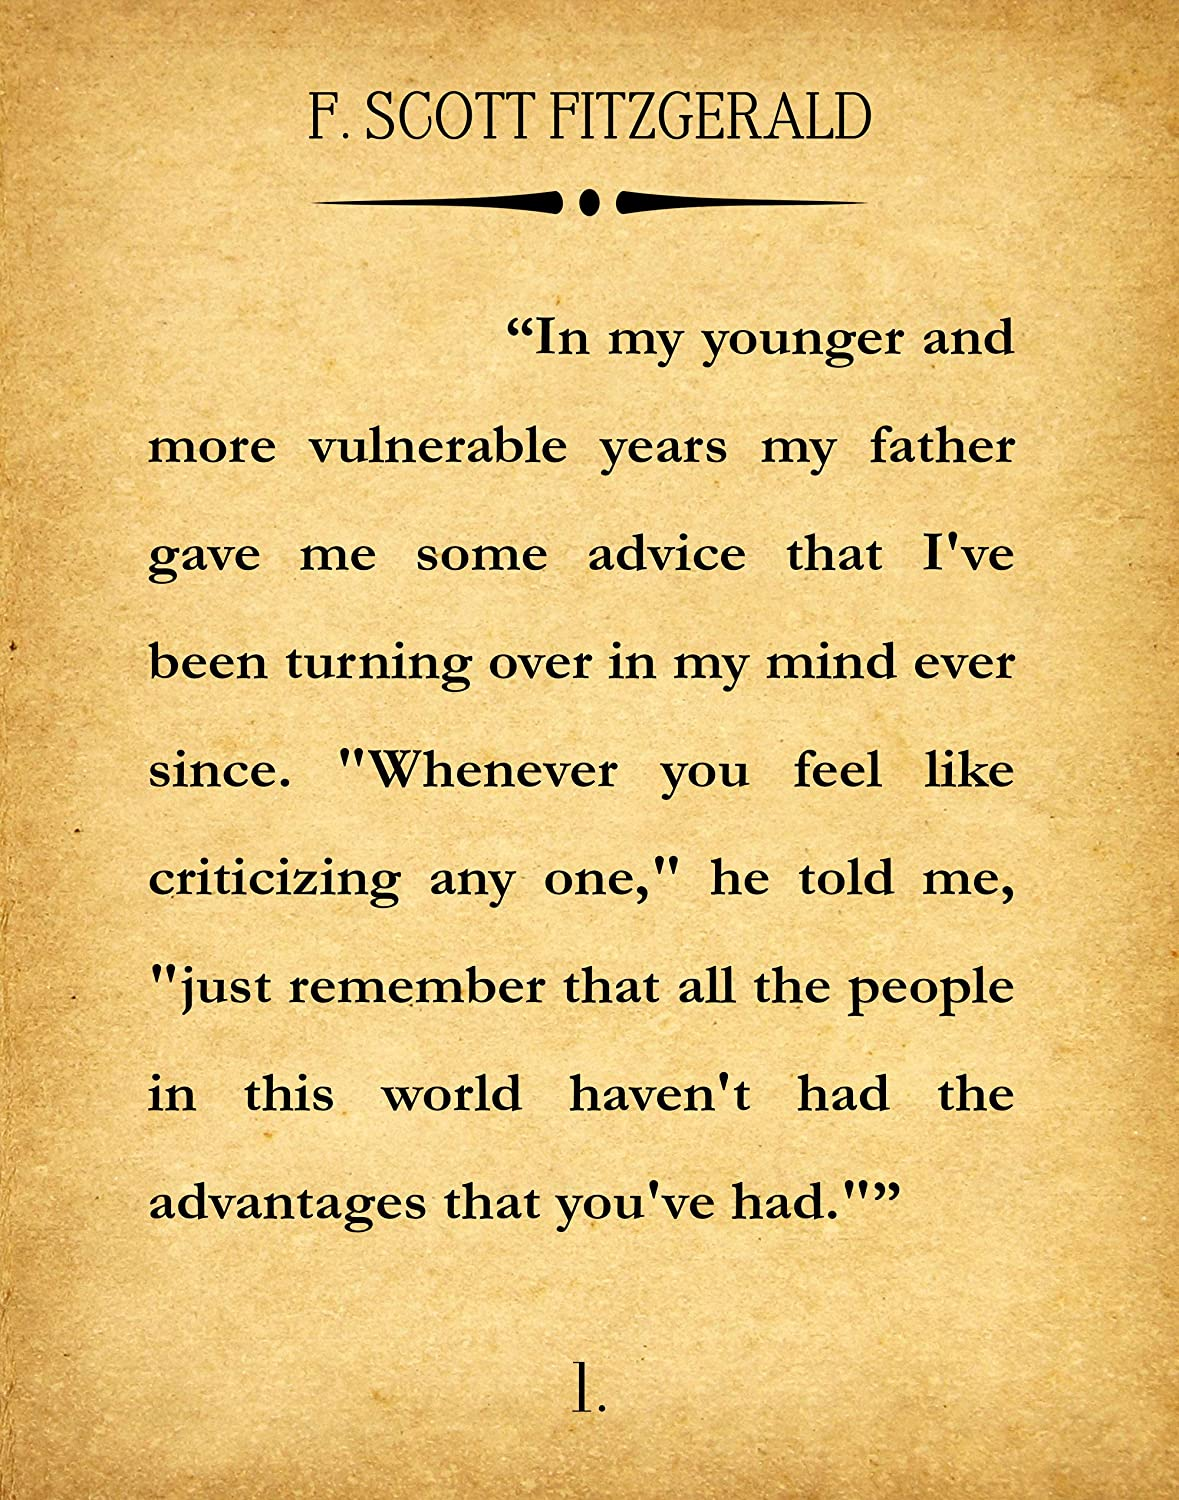 The Great Gatsby First Page Book Wall Art Literary Print F. Scott Fitzgerald Wall Art Quote Book Poster Literature Gift (16 x 20, Vintage)